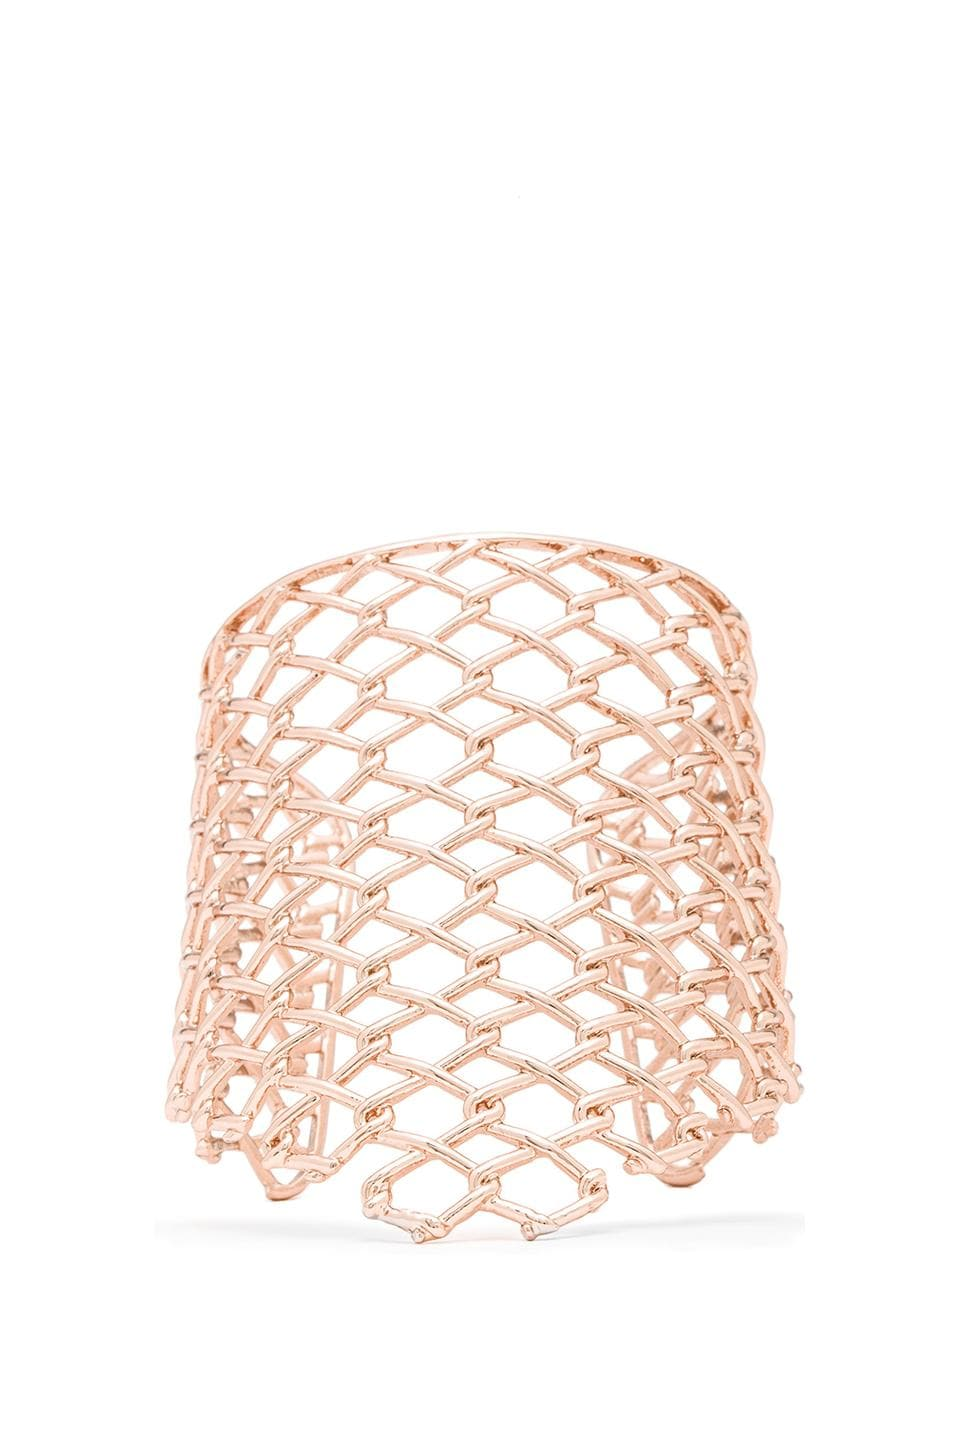 Alexis Bittar Tall Asymmetrical Barbed Link Cuff in Rose Gold